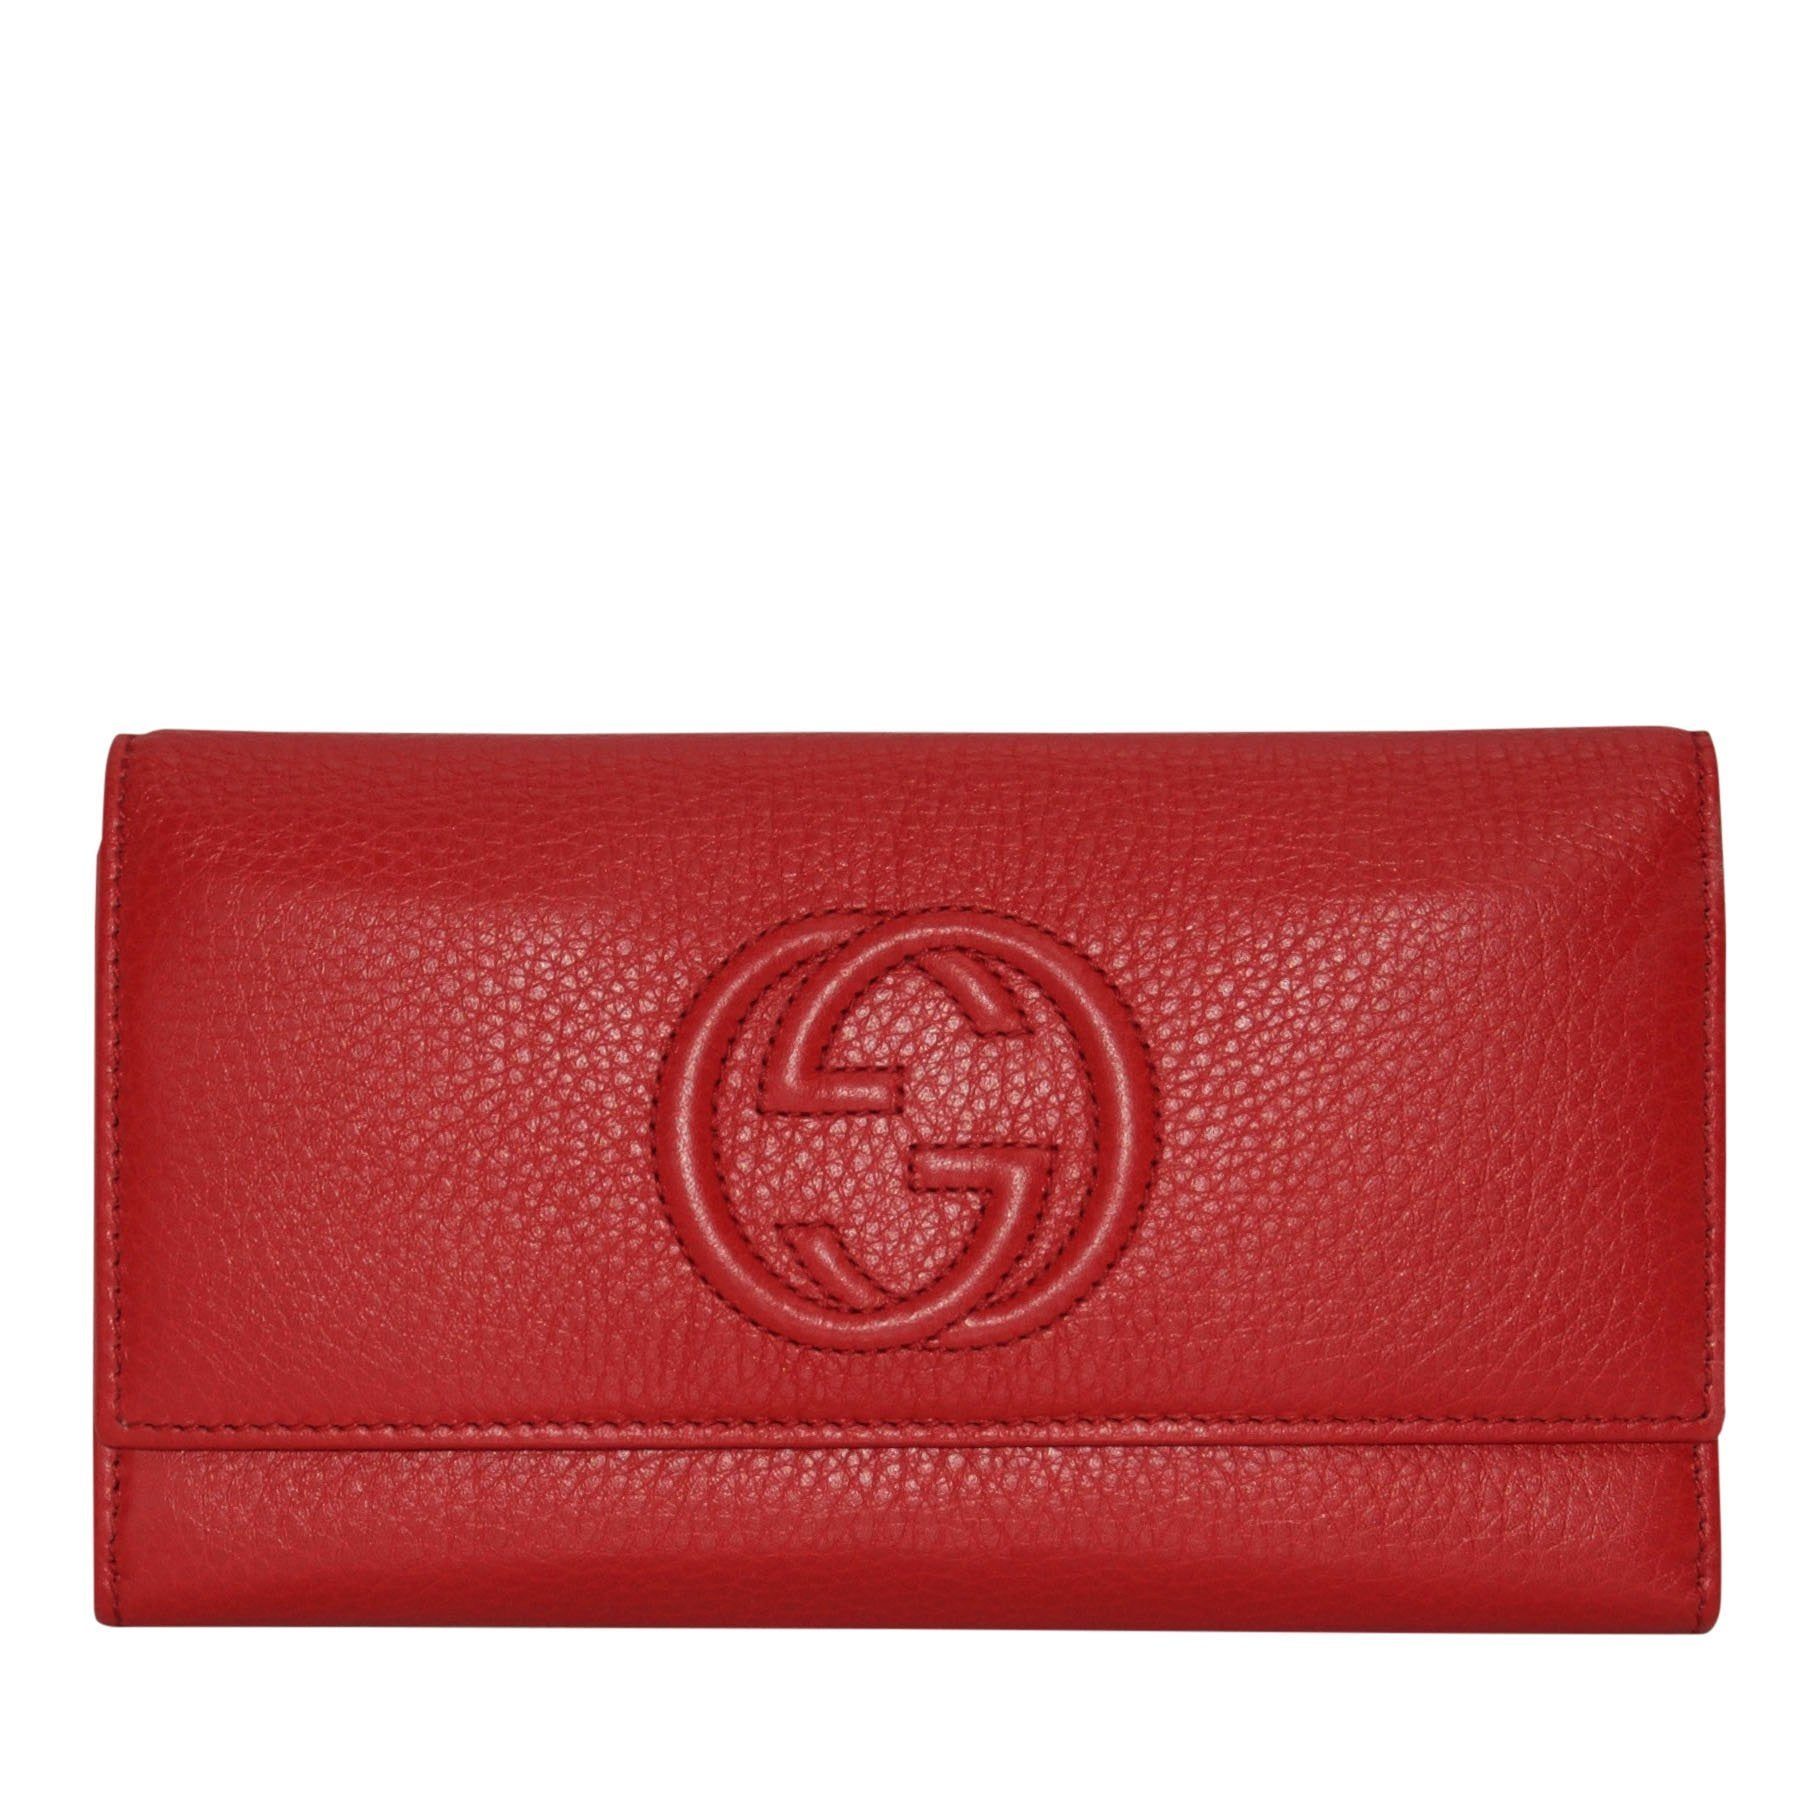 7908a6a5118 Gucci Soho Continental Wallet - Oliver Jewellery